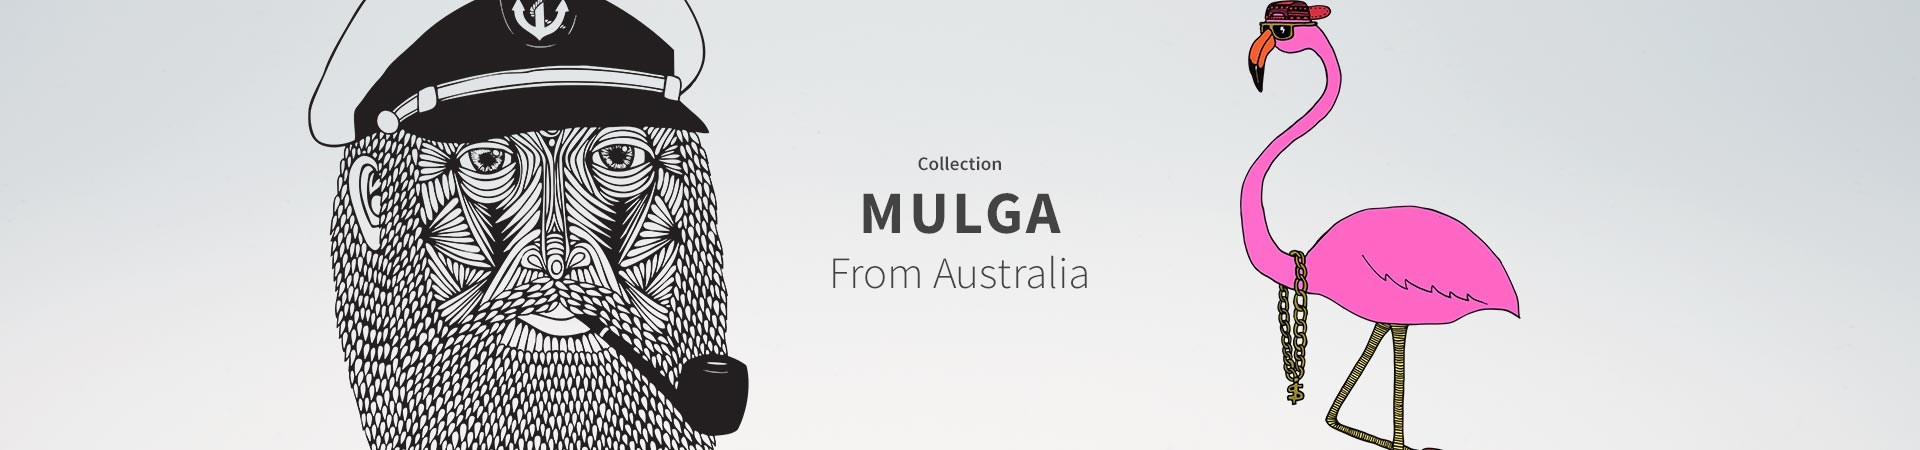 Collection Mulga